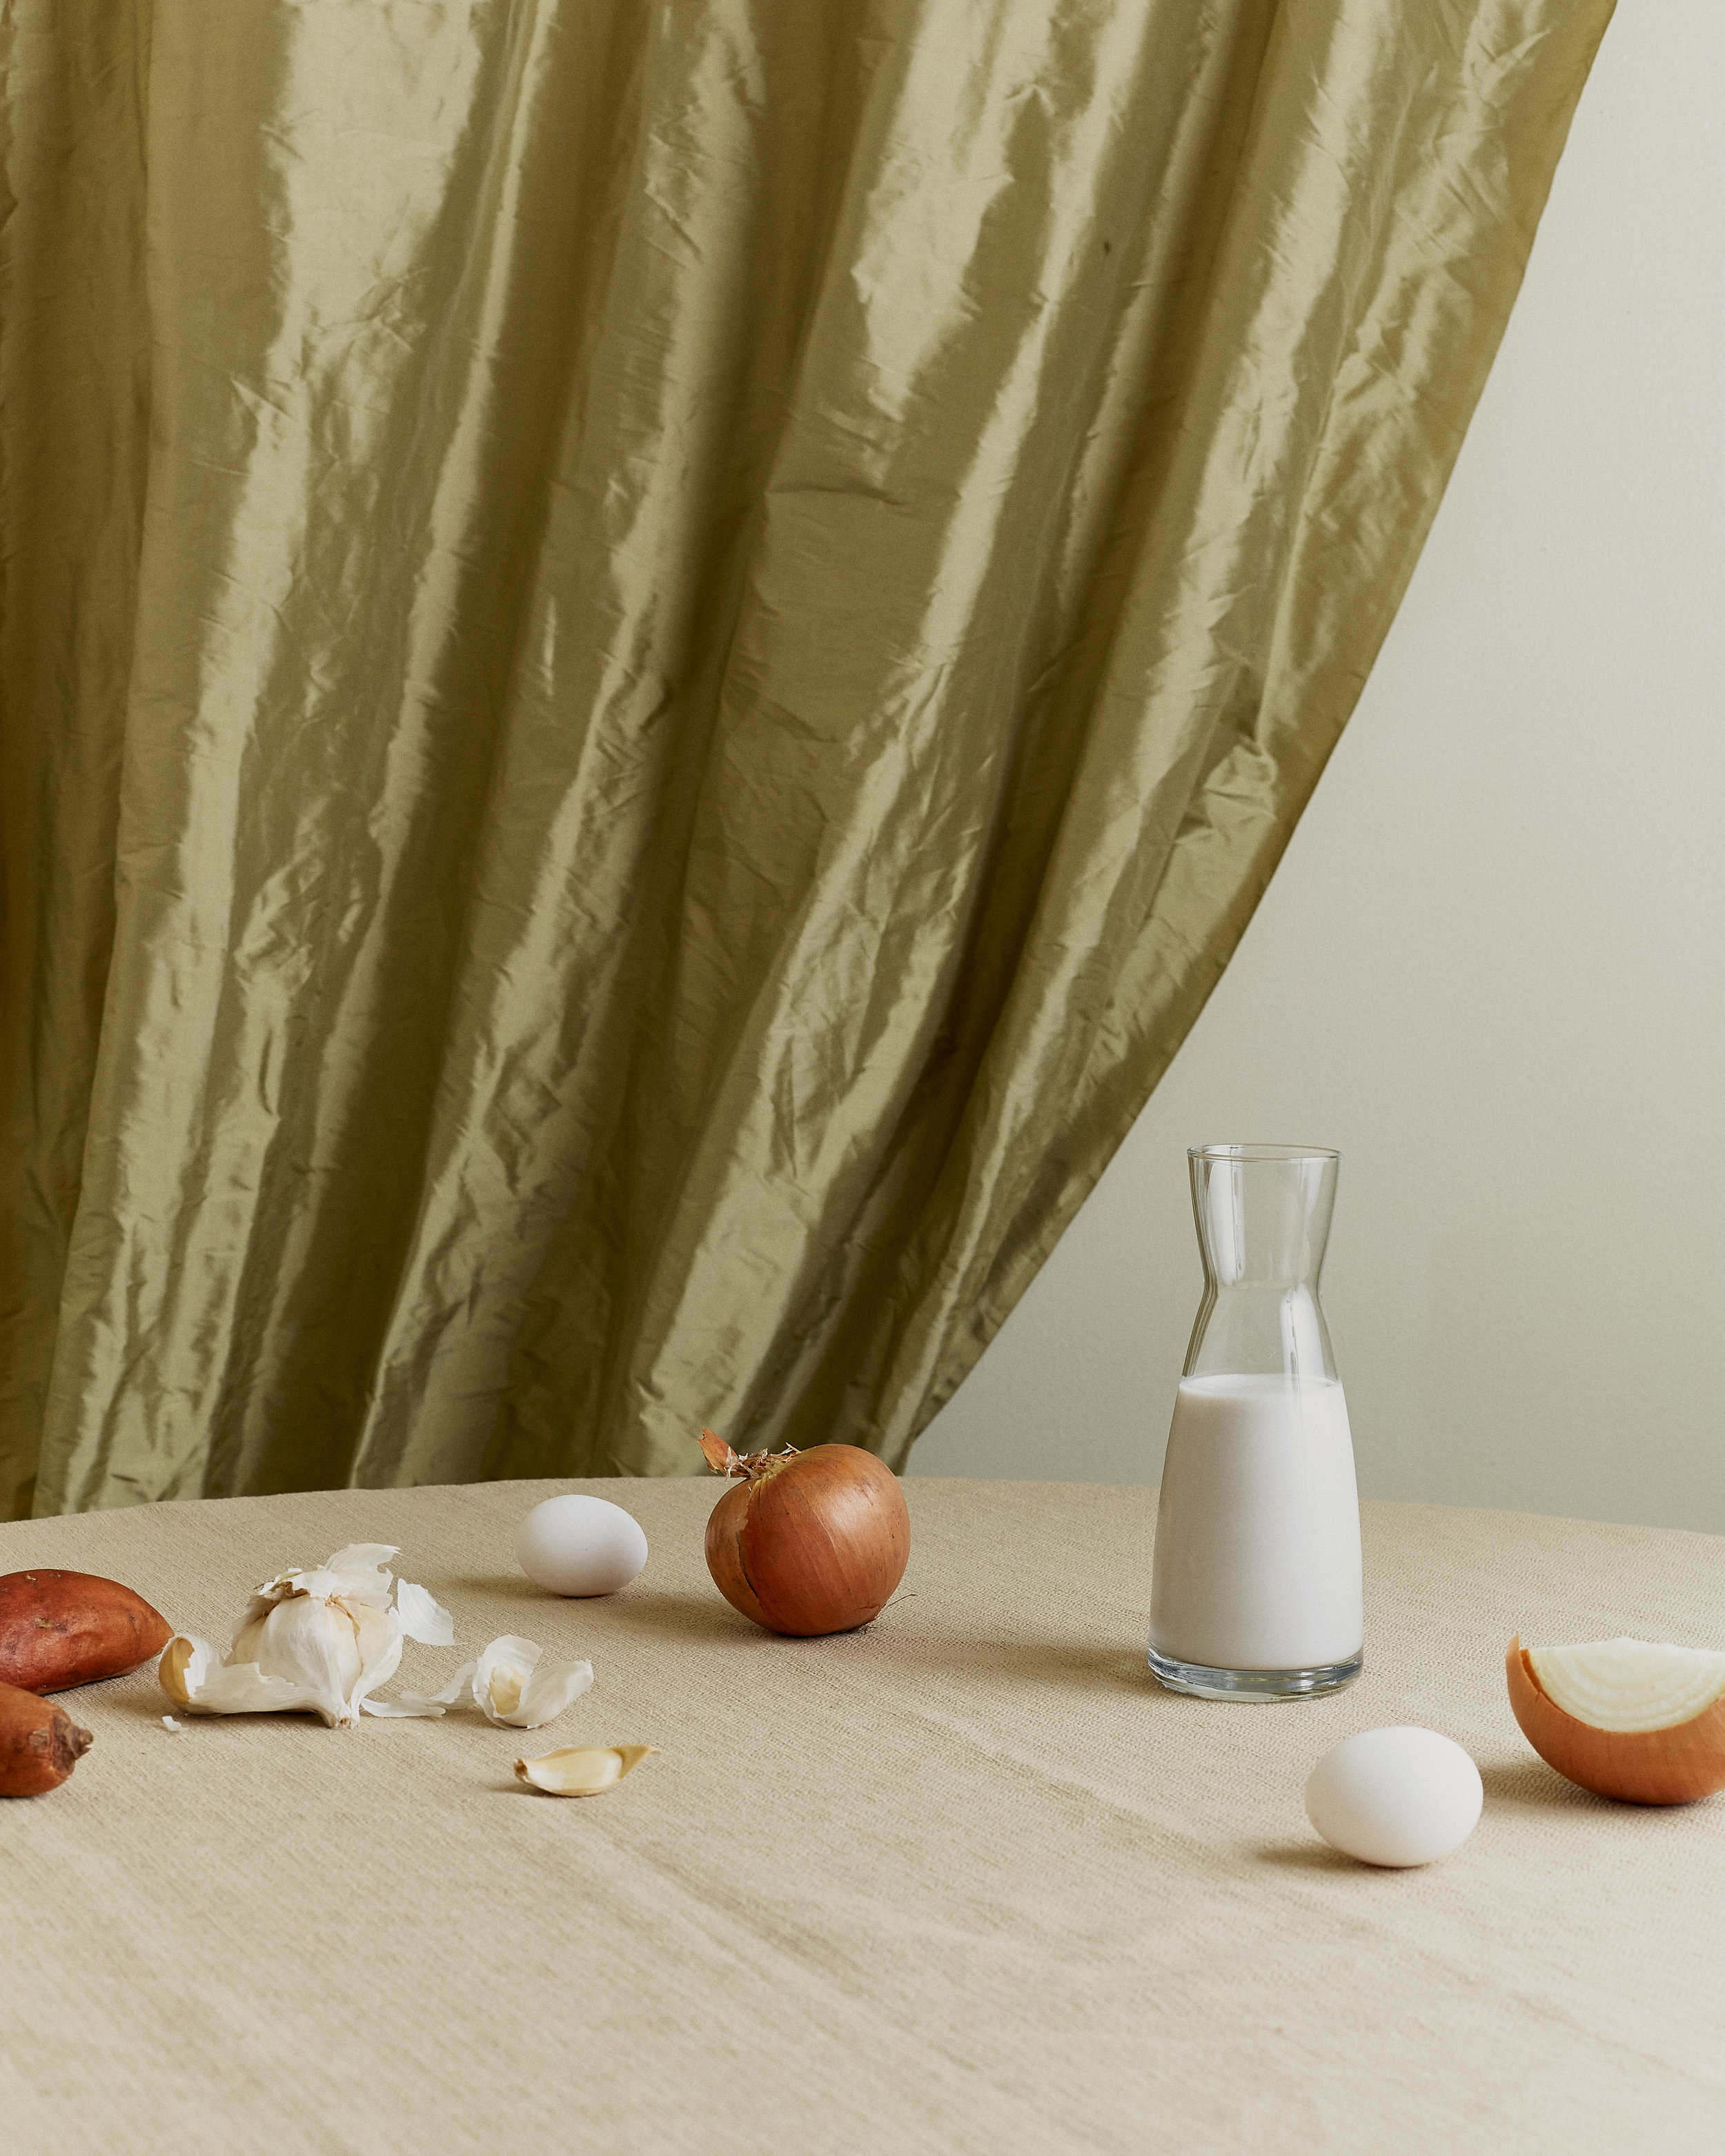 Roots, Eggs, and Milk23766.jpg